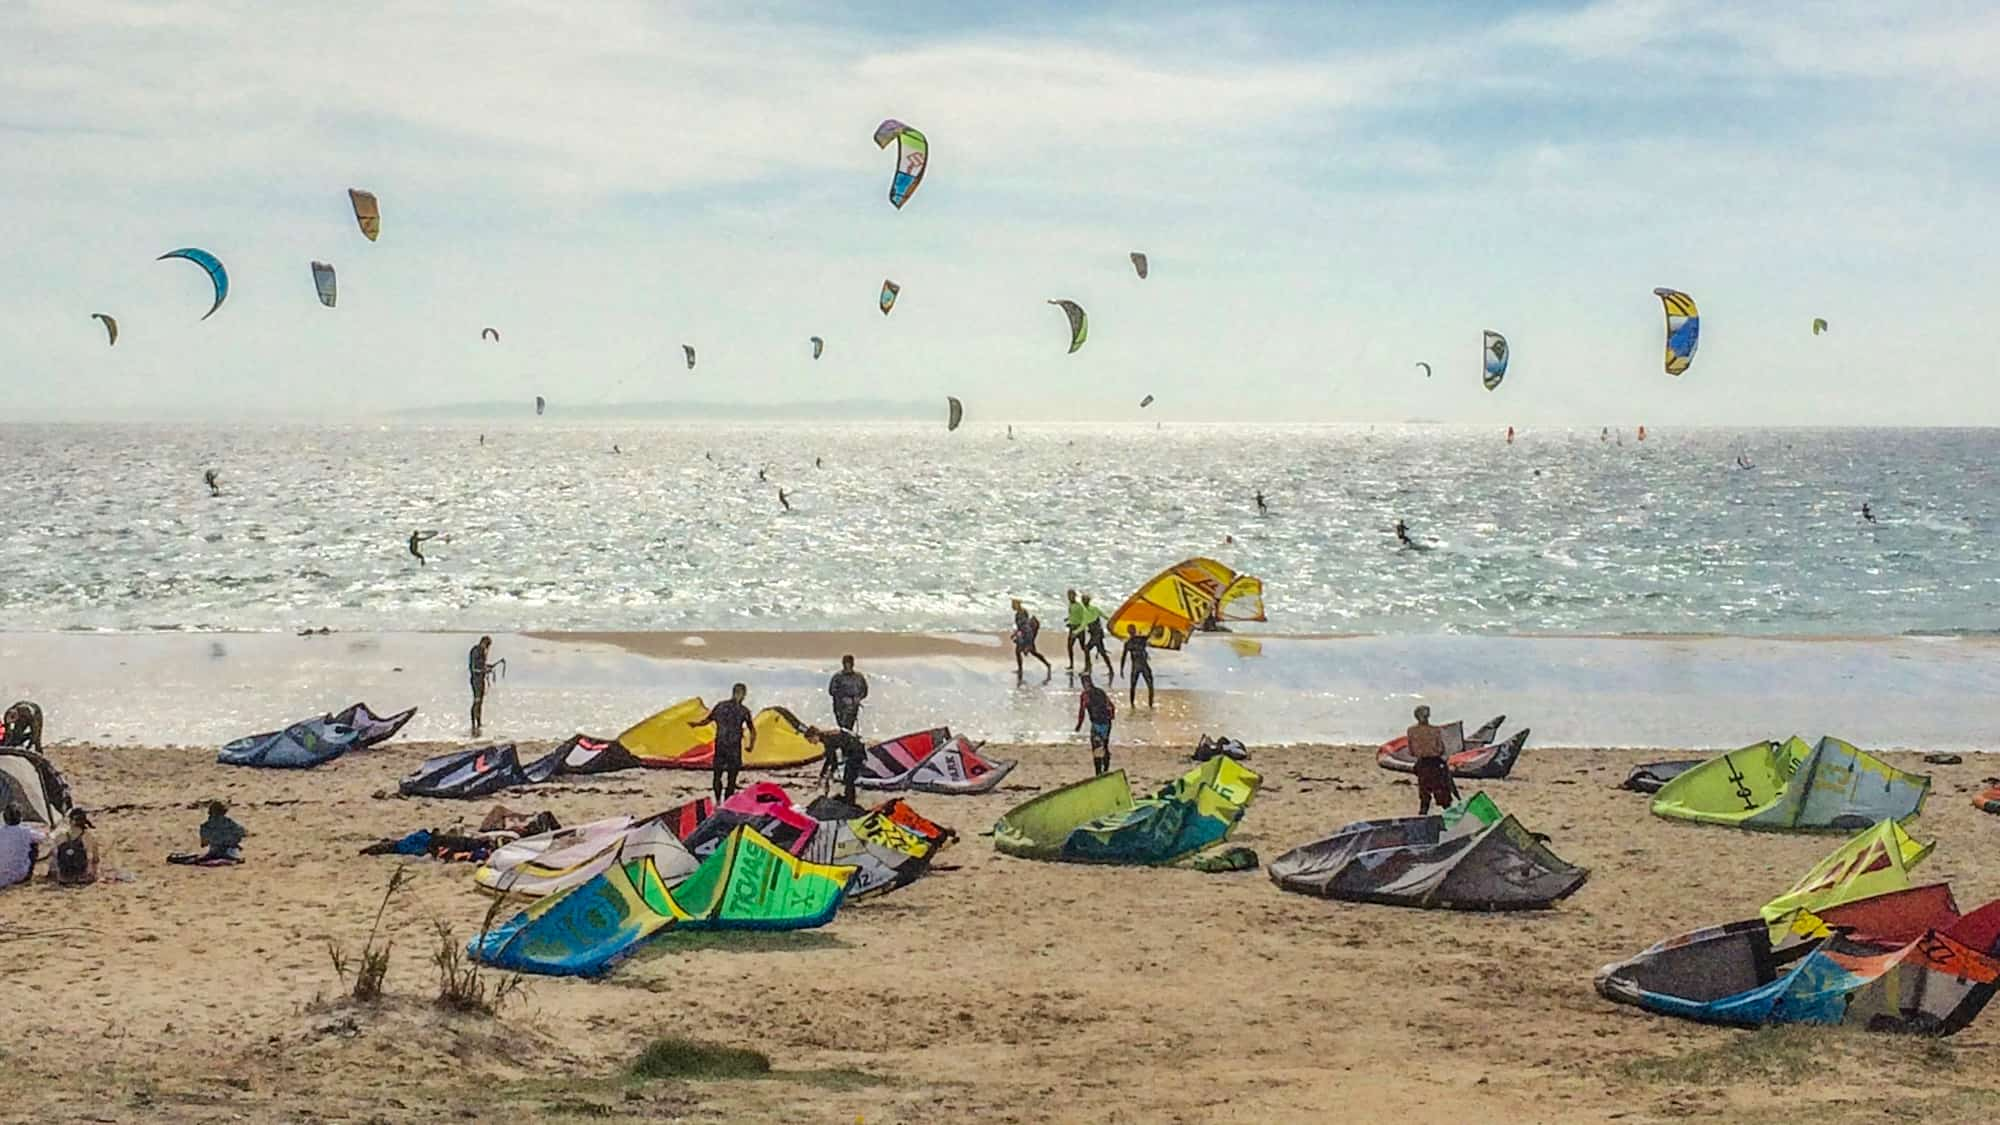 Kites in Tarifa